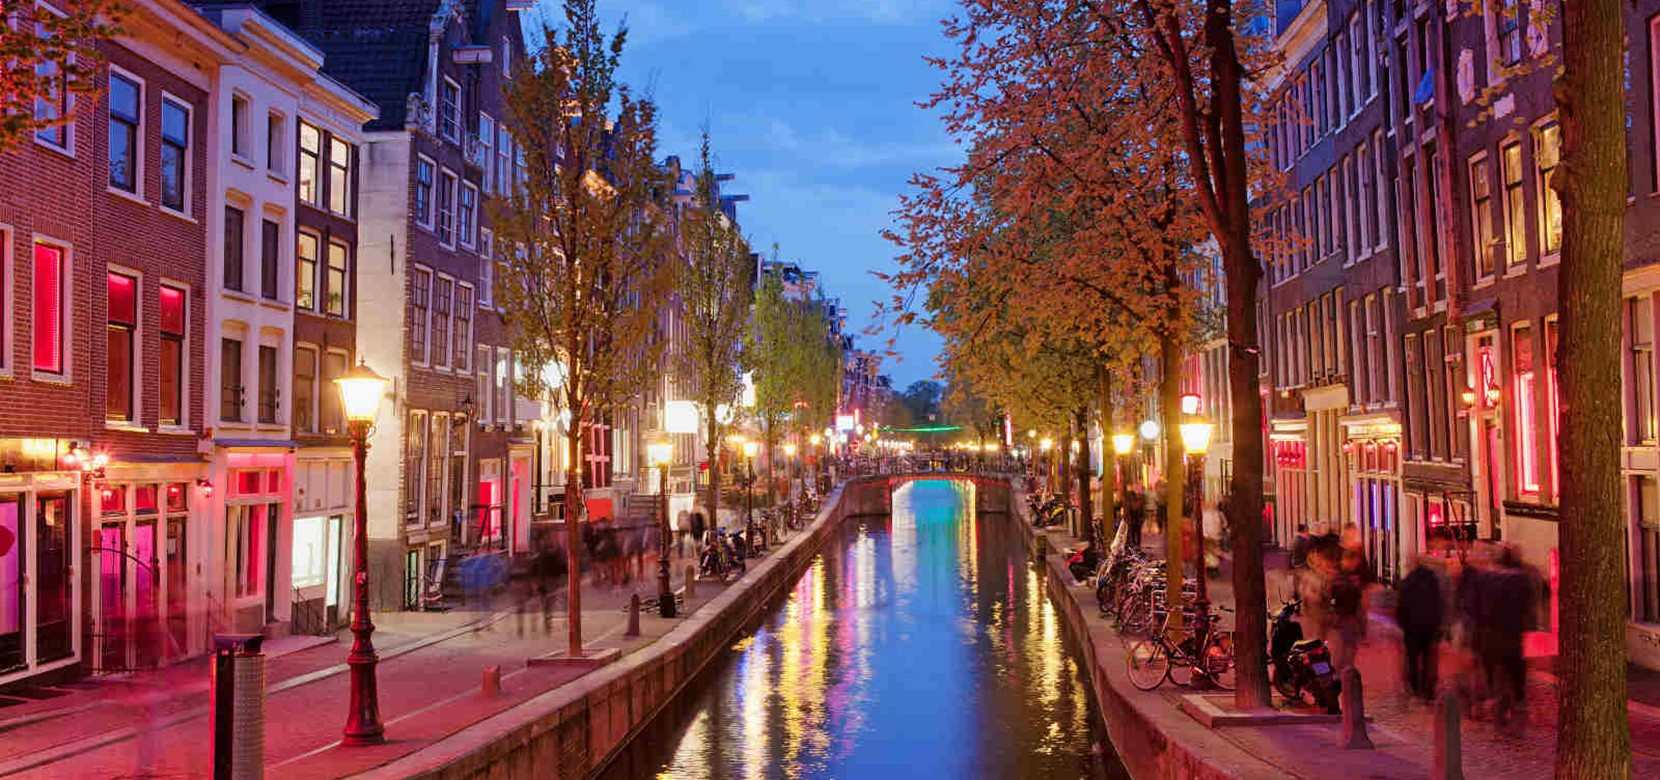 In the Red Light District, Amsterdam shows its other side